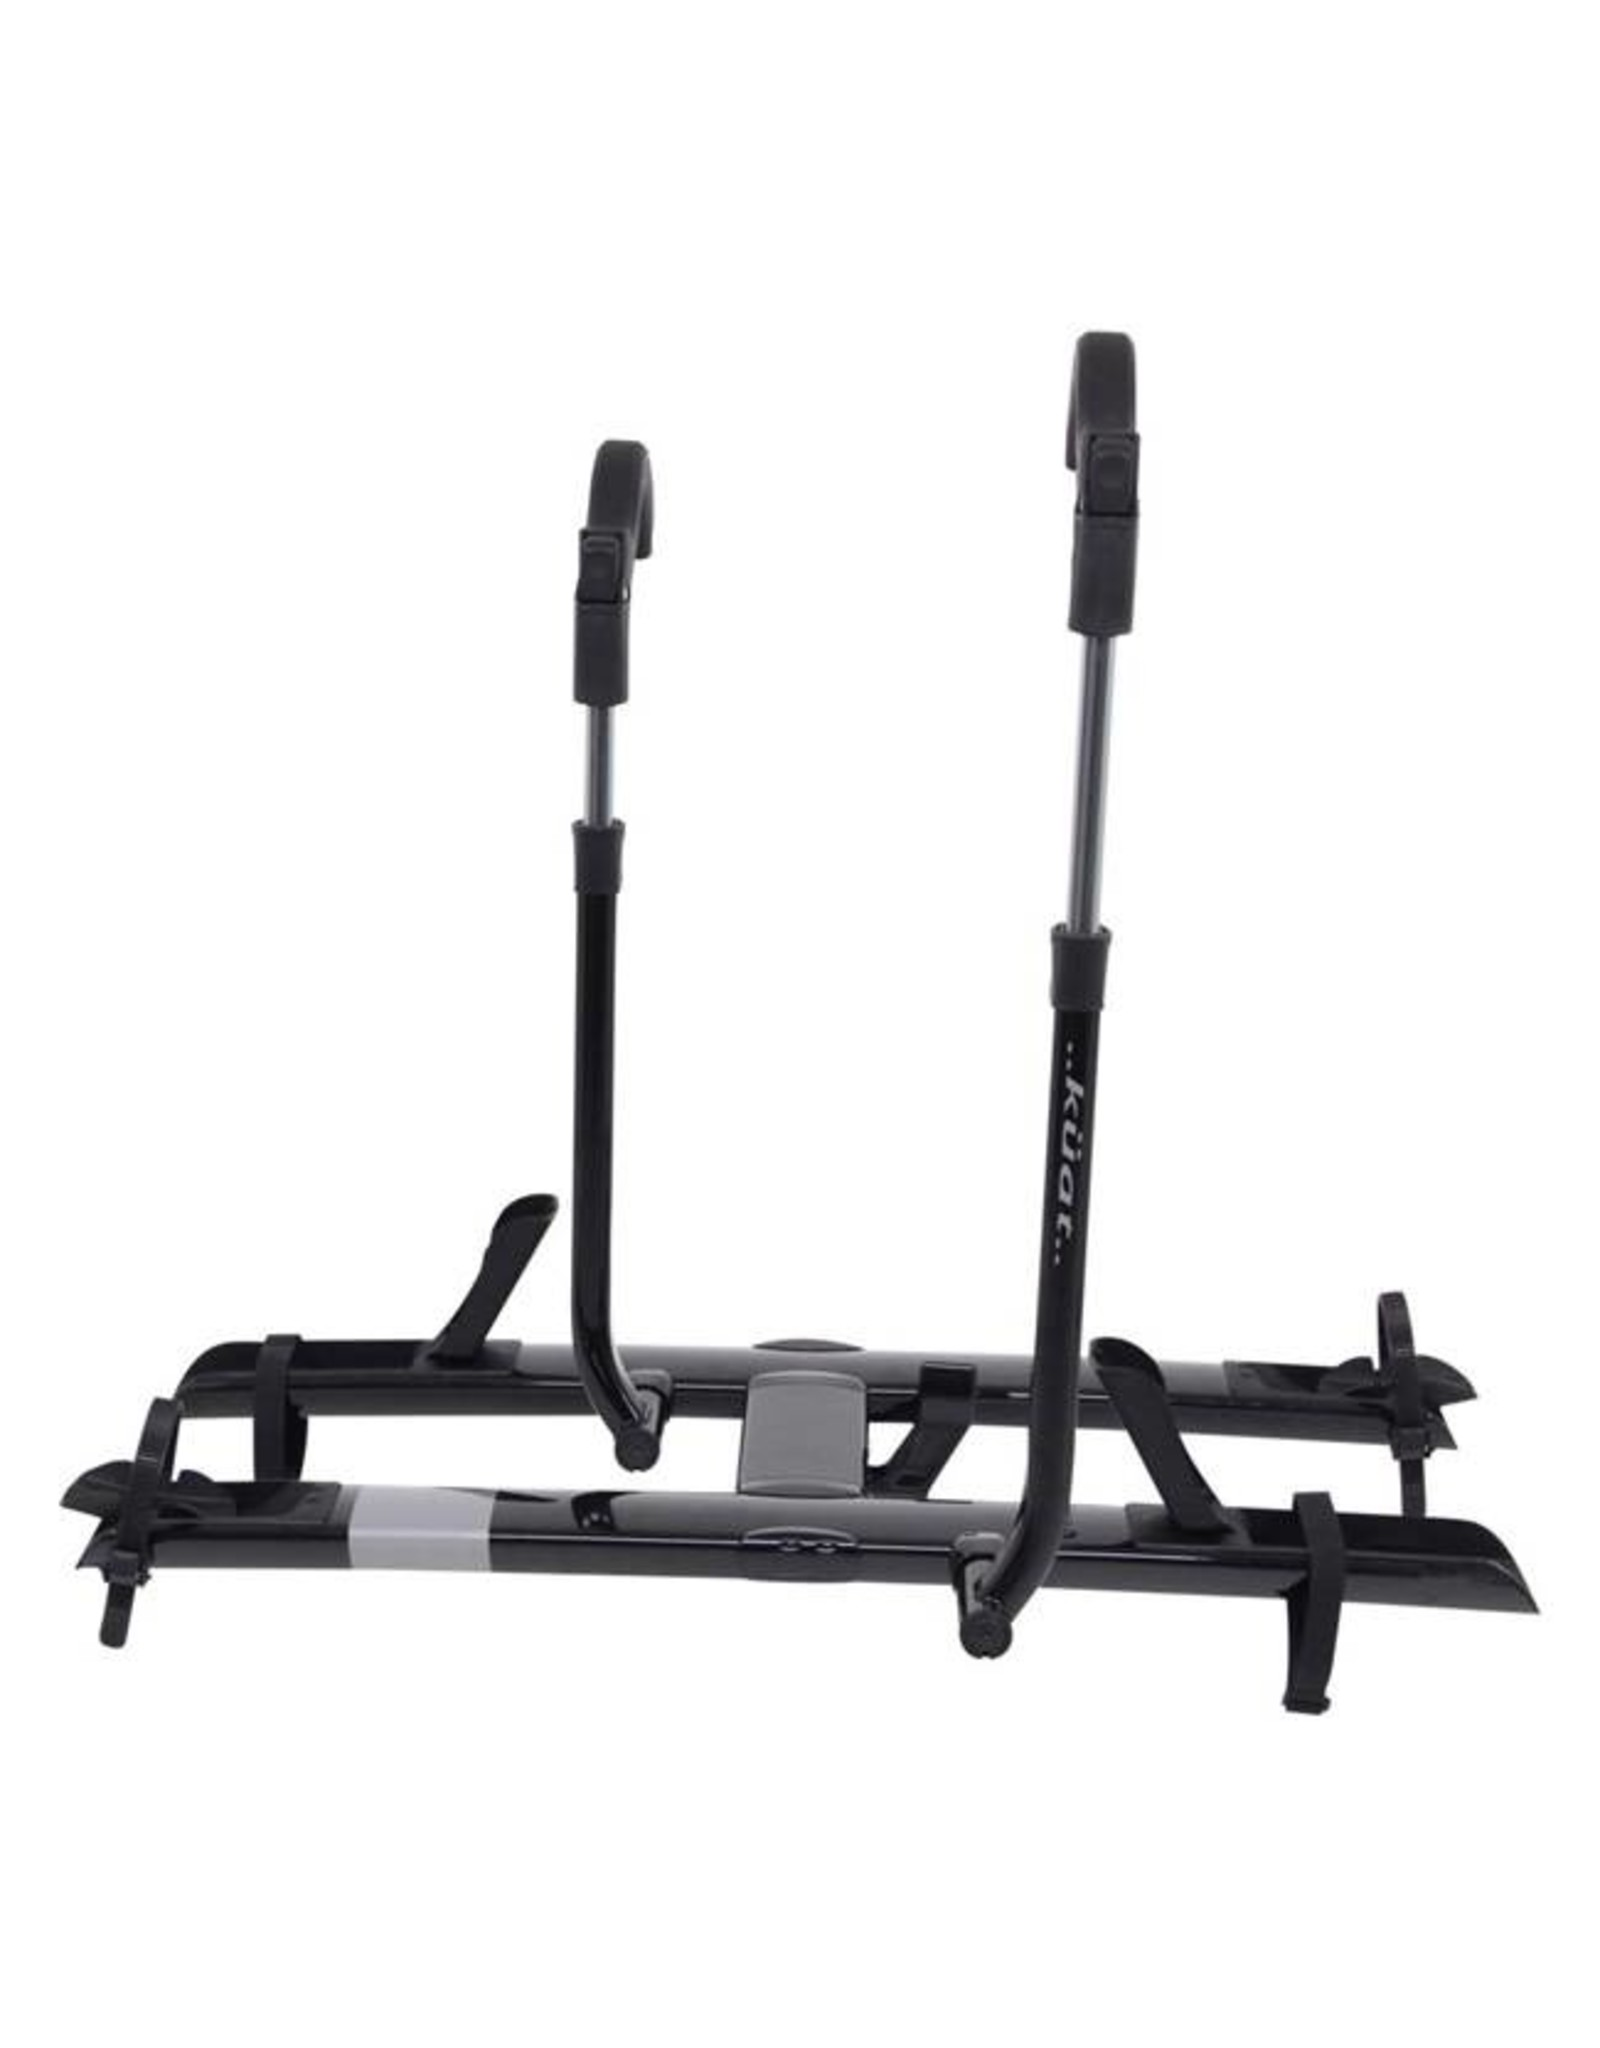 "Kuat Kuat Sherpa 2.0 Hitch Rack: 2"" Receiver, 2 Bike Trays, Black Metallic"